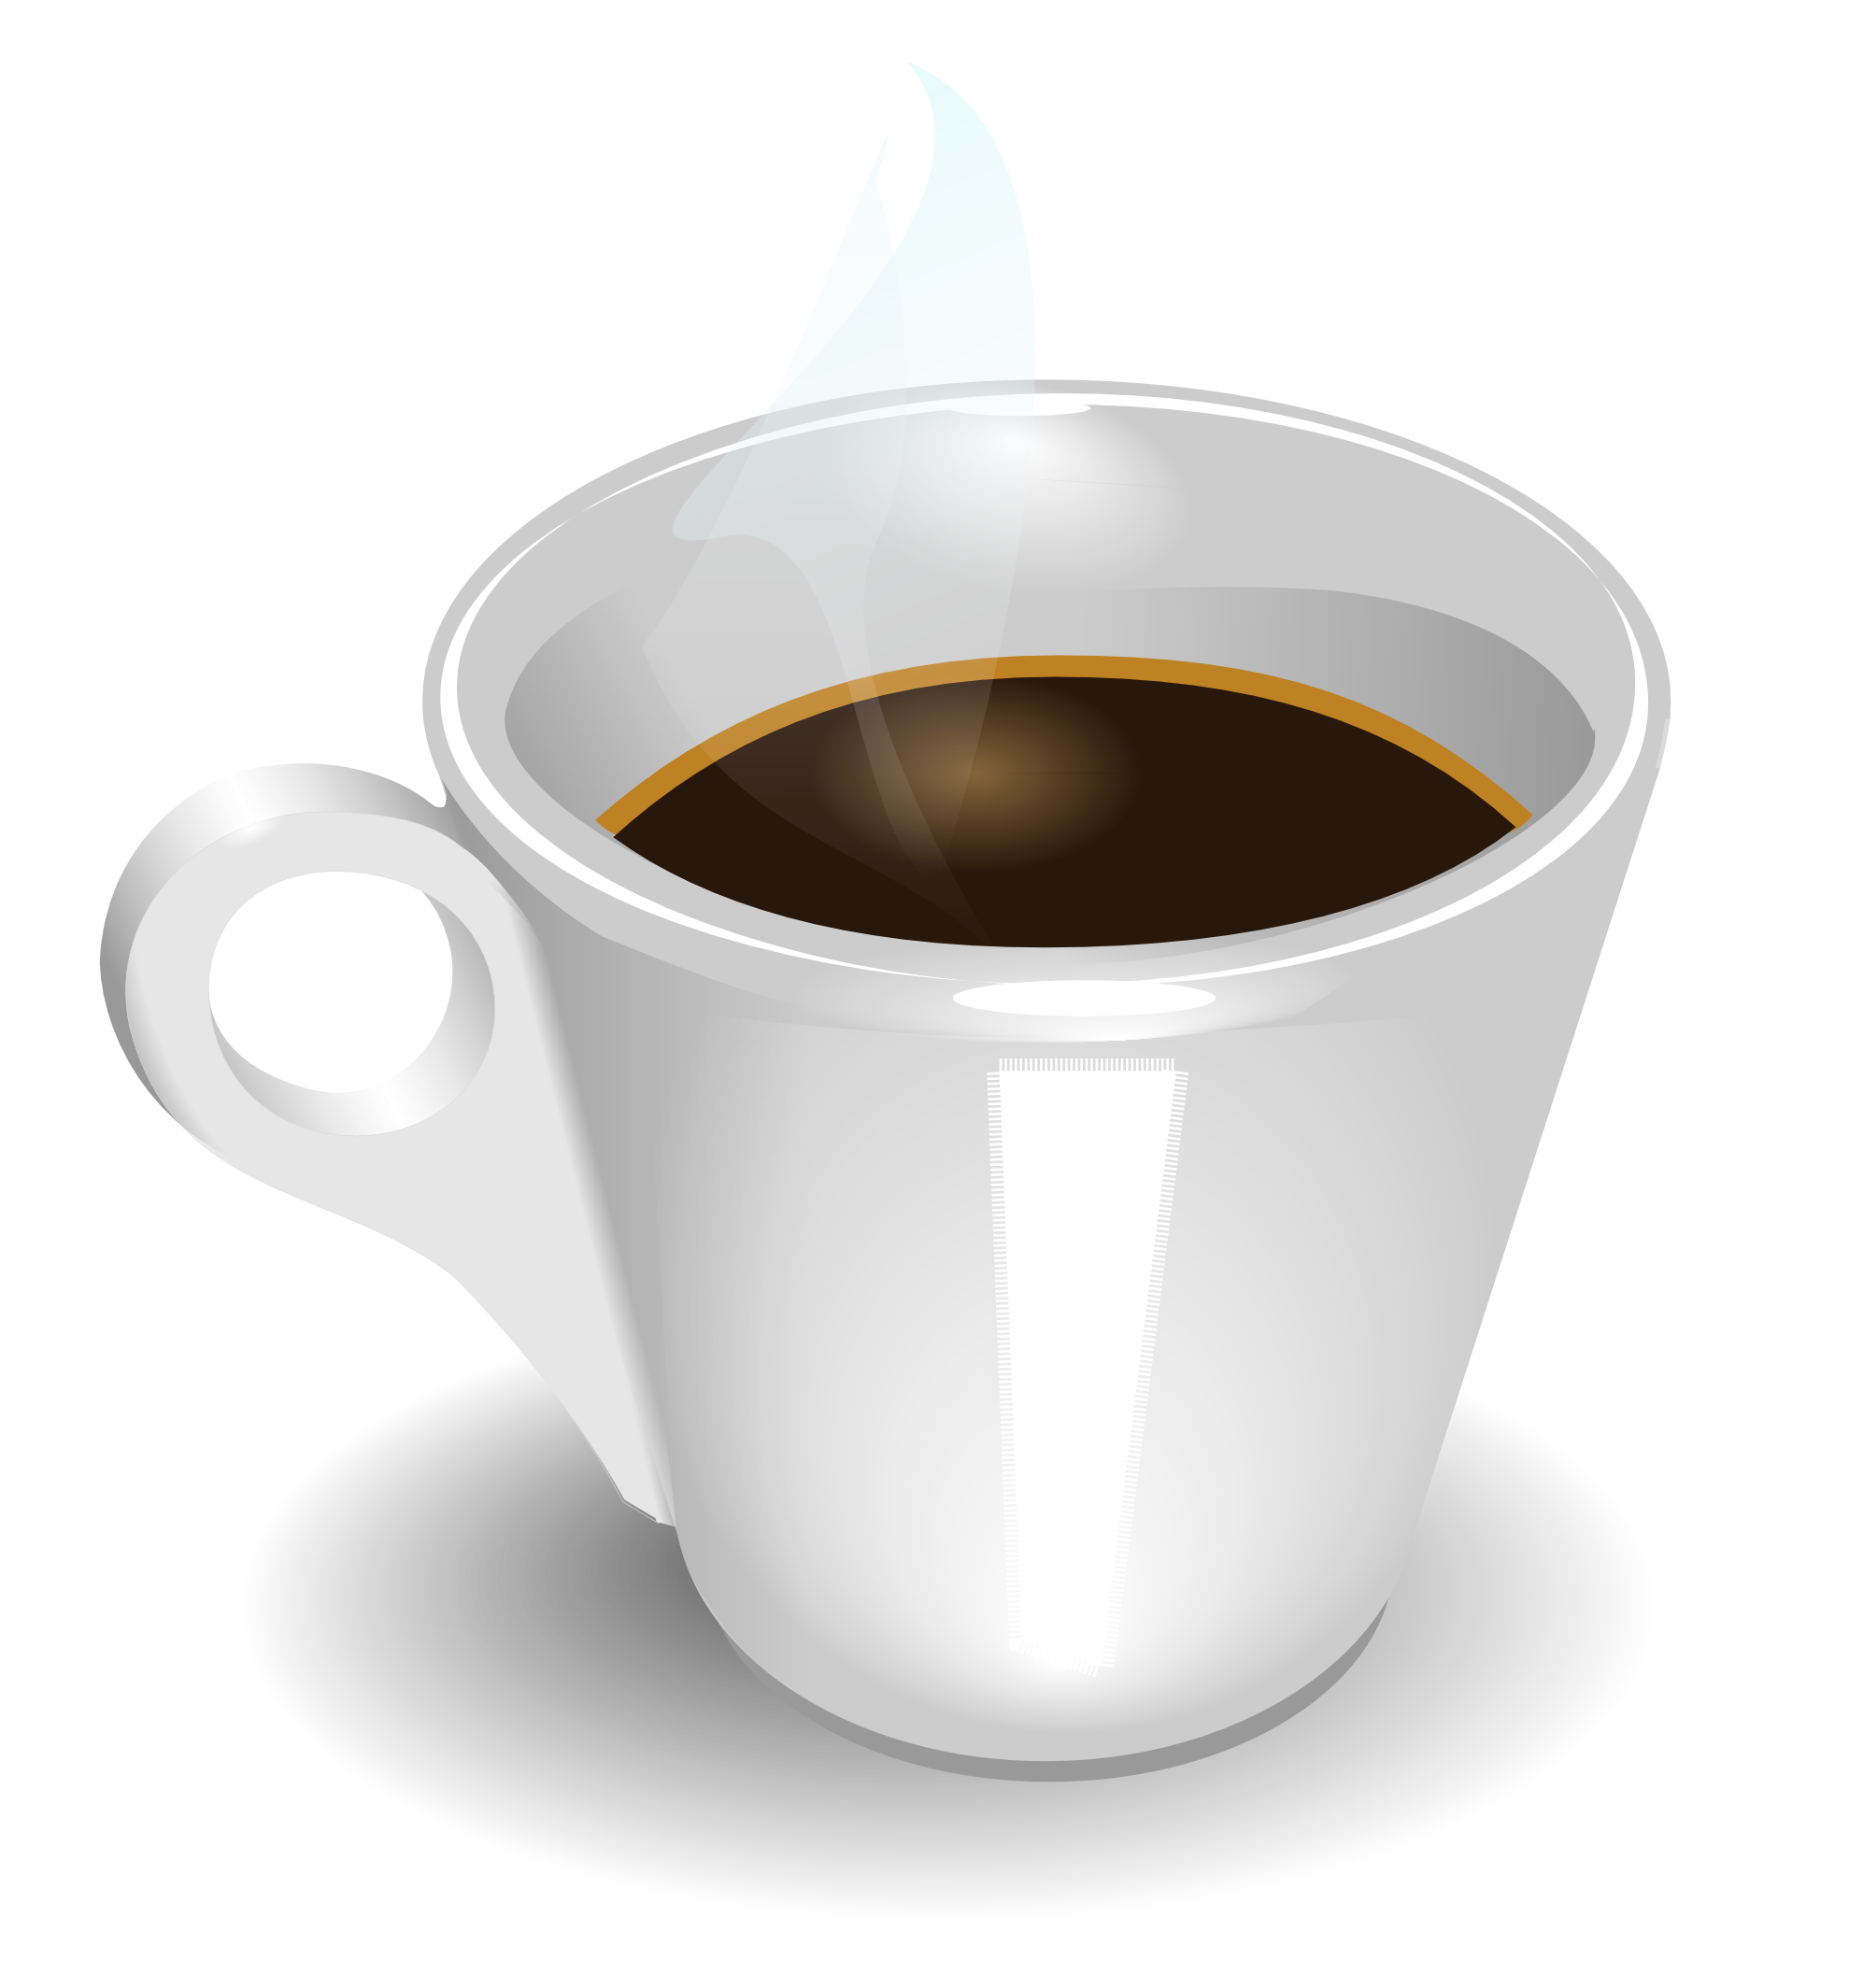 Cup PNG HD